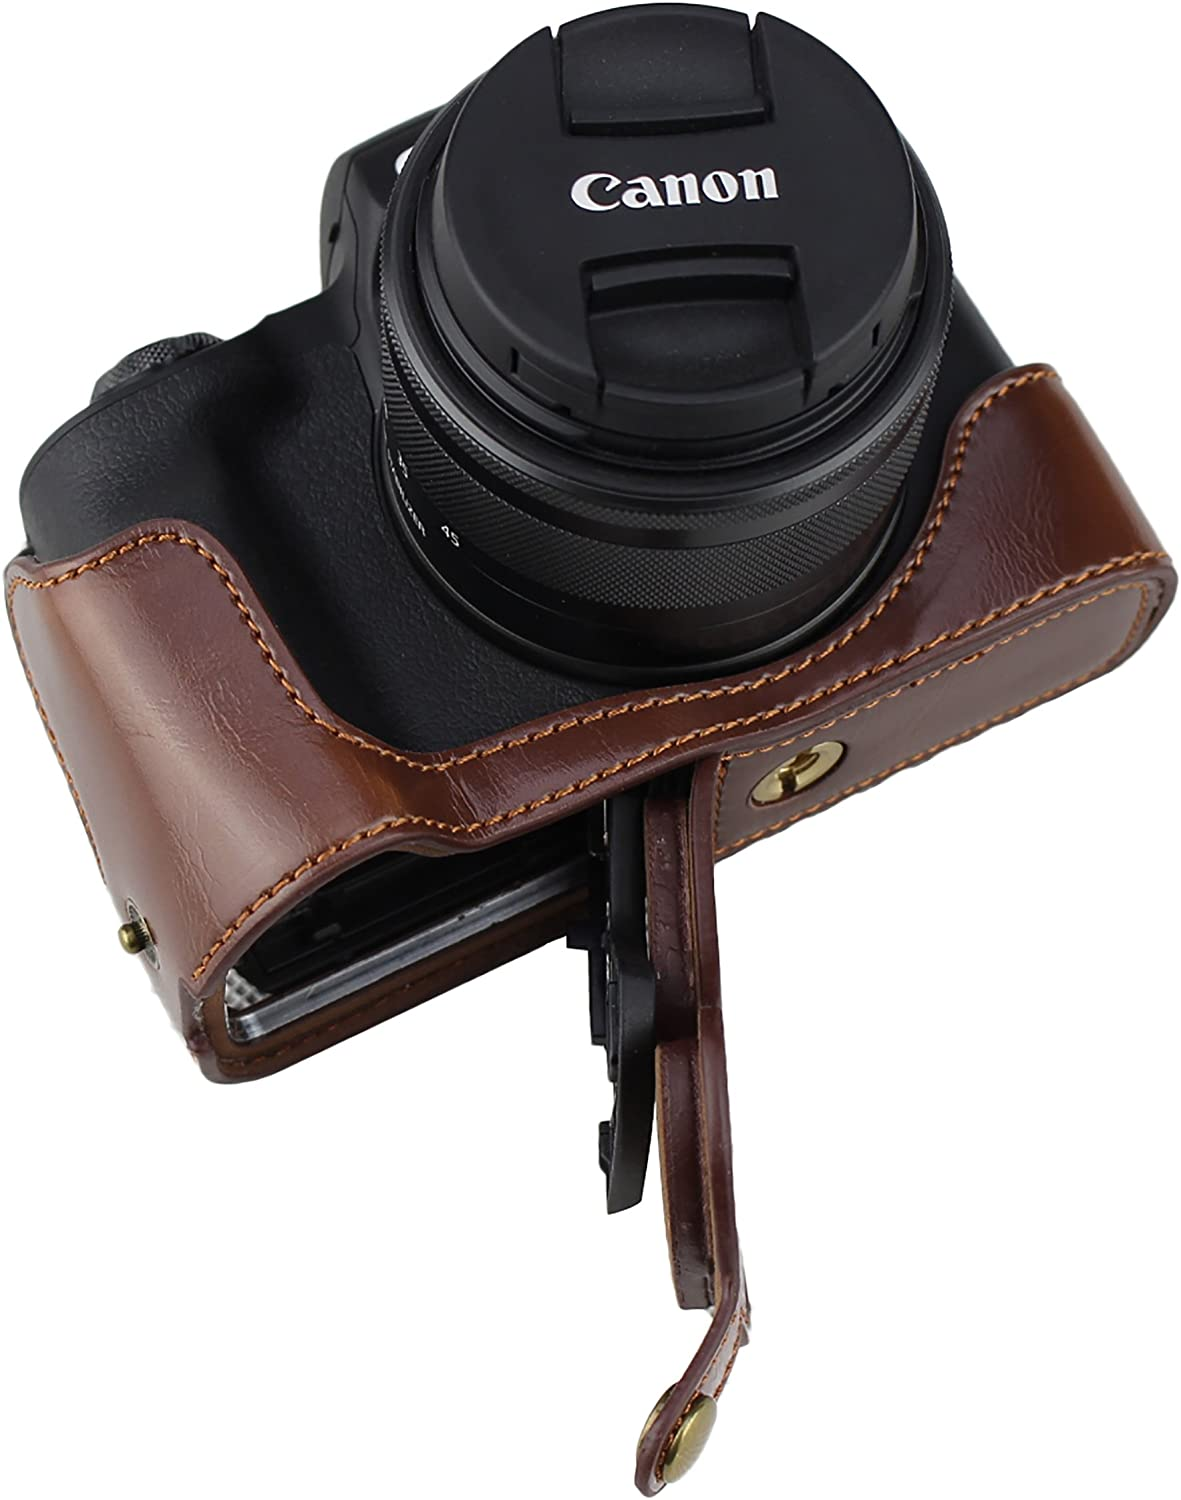 Bottom Opening Version Protective PU Leather Half Camera Case Bag for Canon EOS M50 with Hand Strap Dark Brown